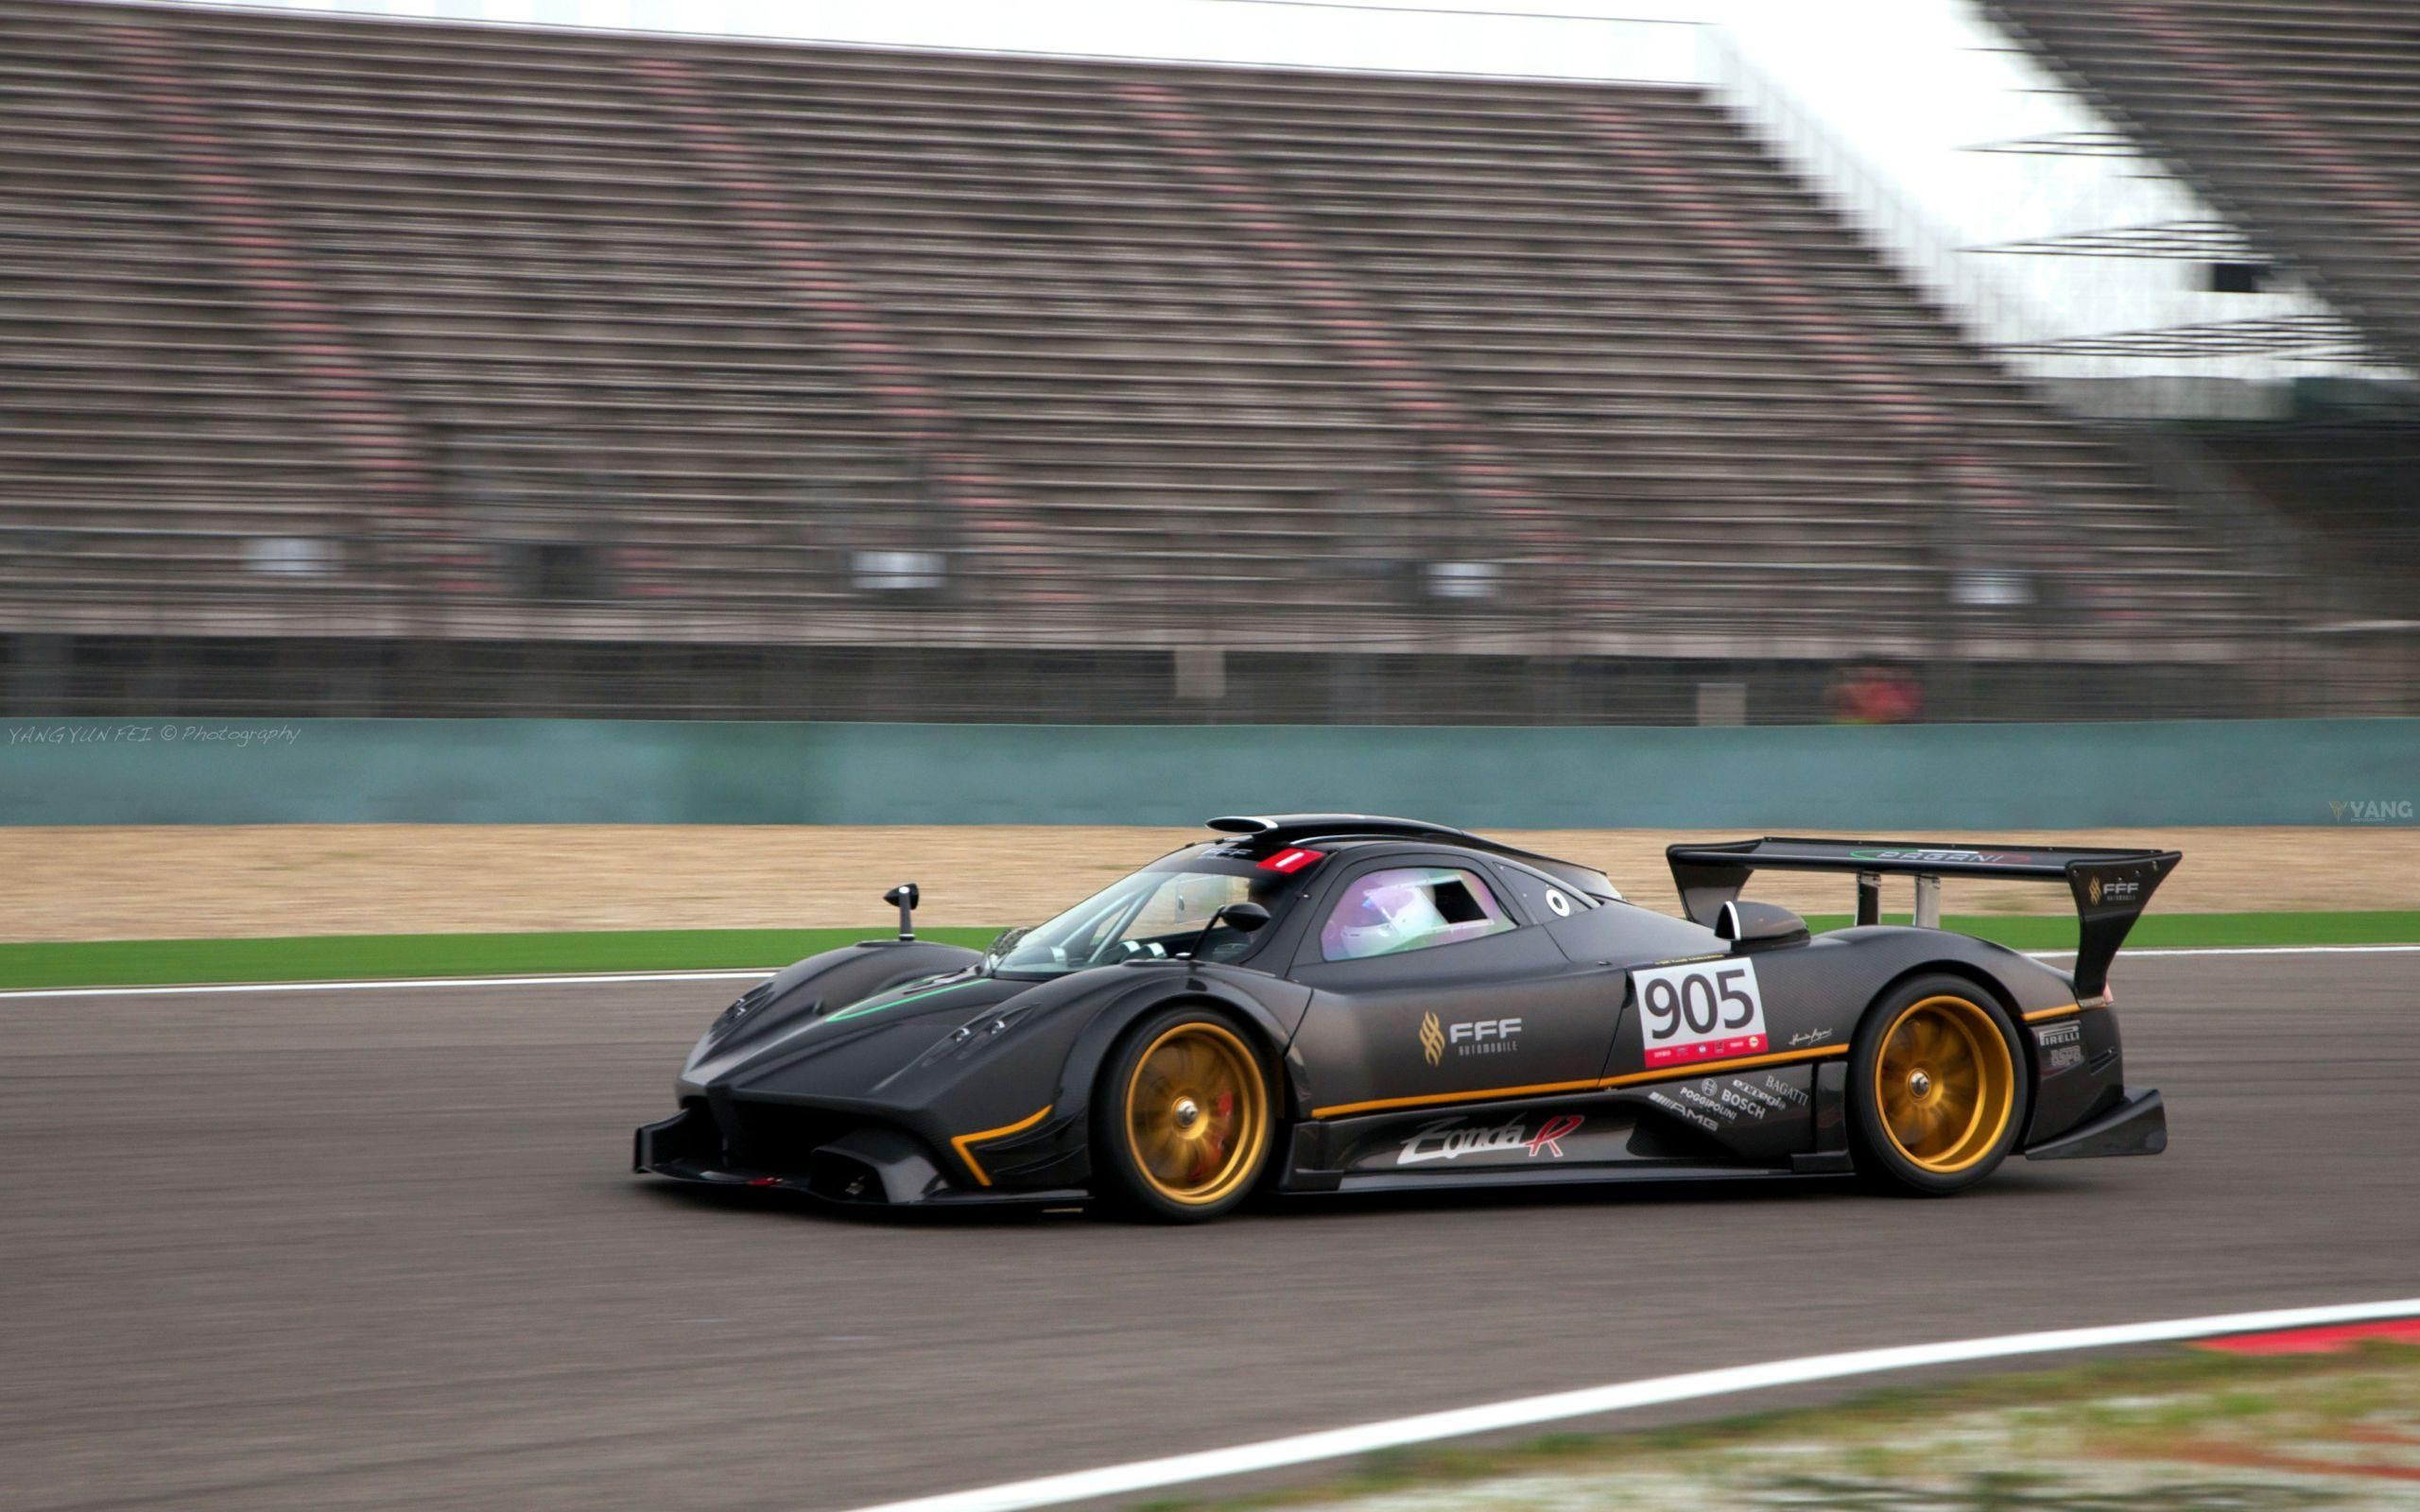 Superior Pagani Zonda R Fire Abstract Car El Tony